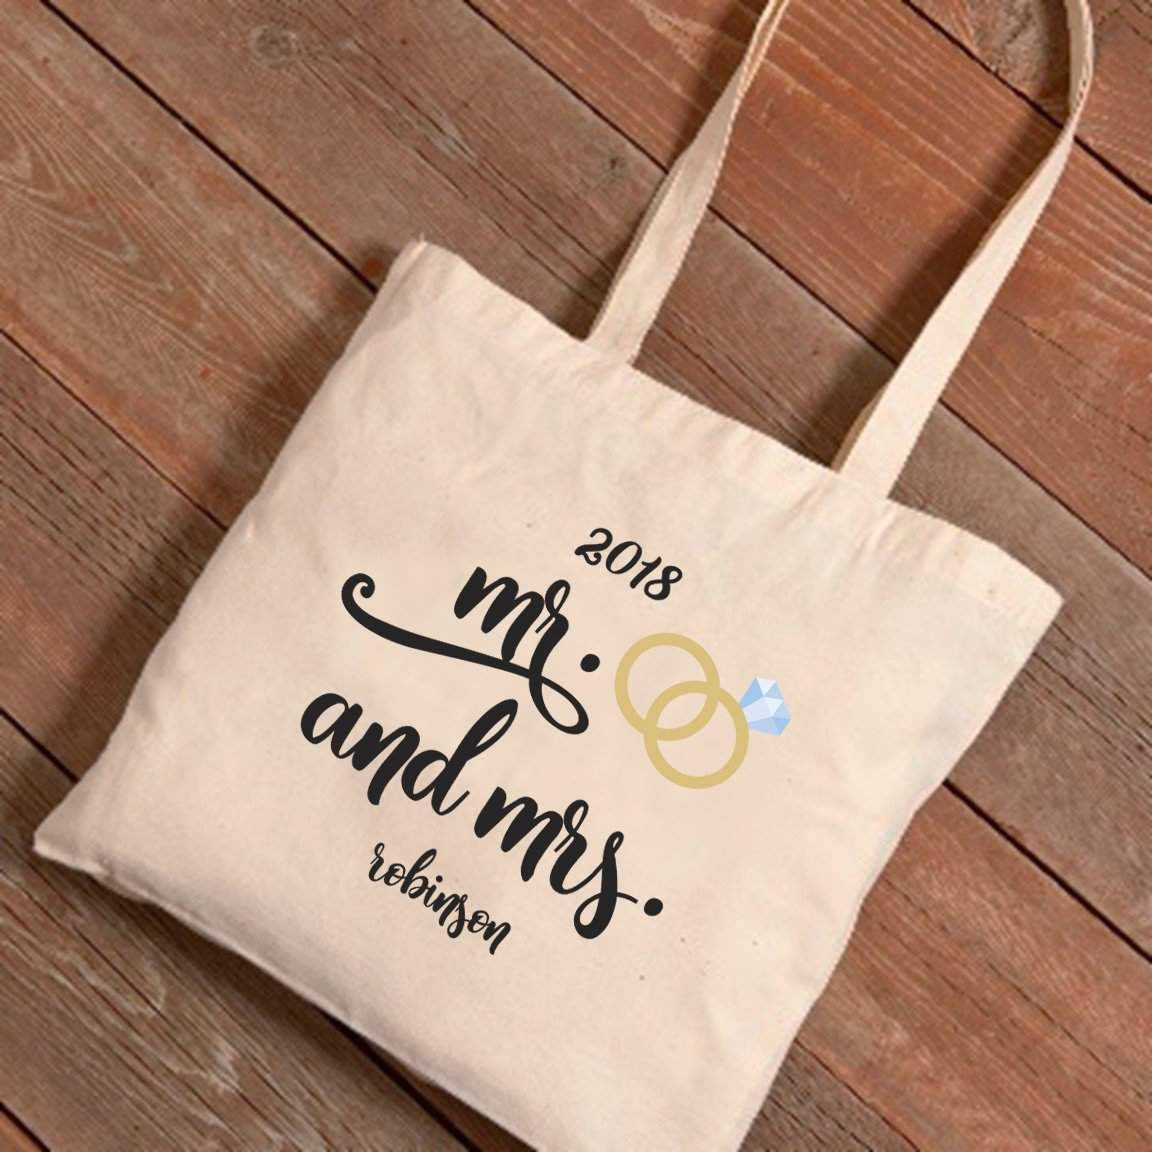 Personalized-Mr-Mrs-Wedding-Rings-Canvas-Tote